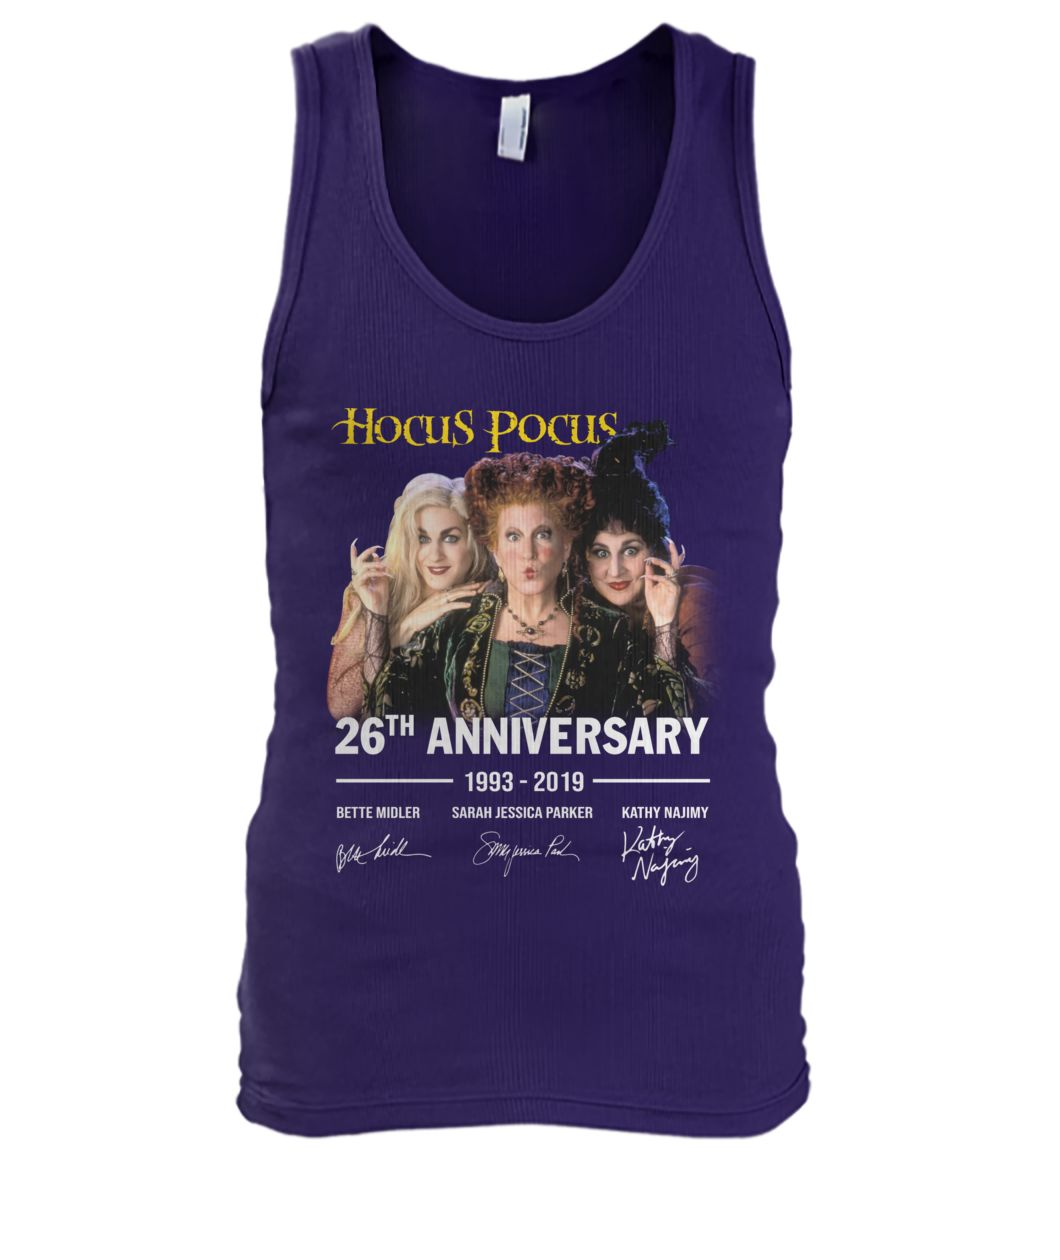 Hocus pocus 26th anniversary 1993 2019 signature men's tank top